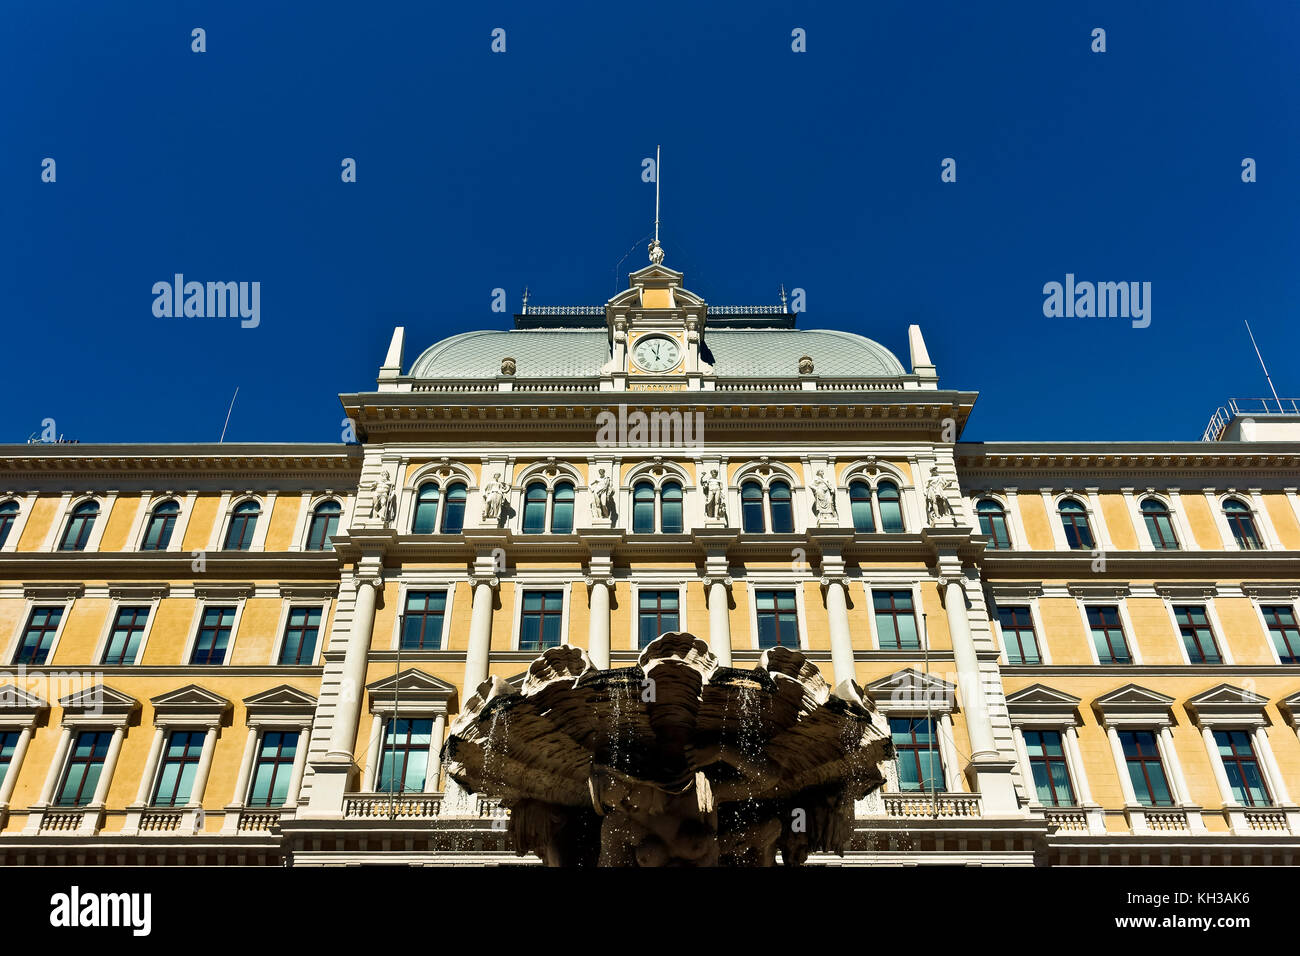 Central Post Office and Middle European Postal and Telegraph Museum, Piazza Vittorio Veneto Square. Trieste, Italy, - Stock Image